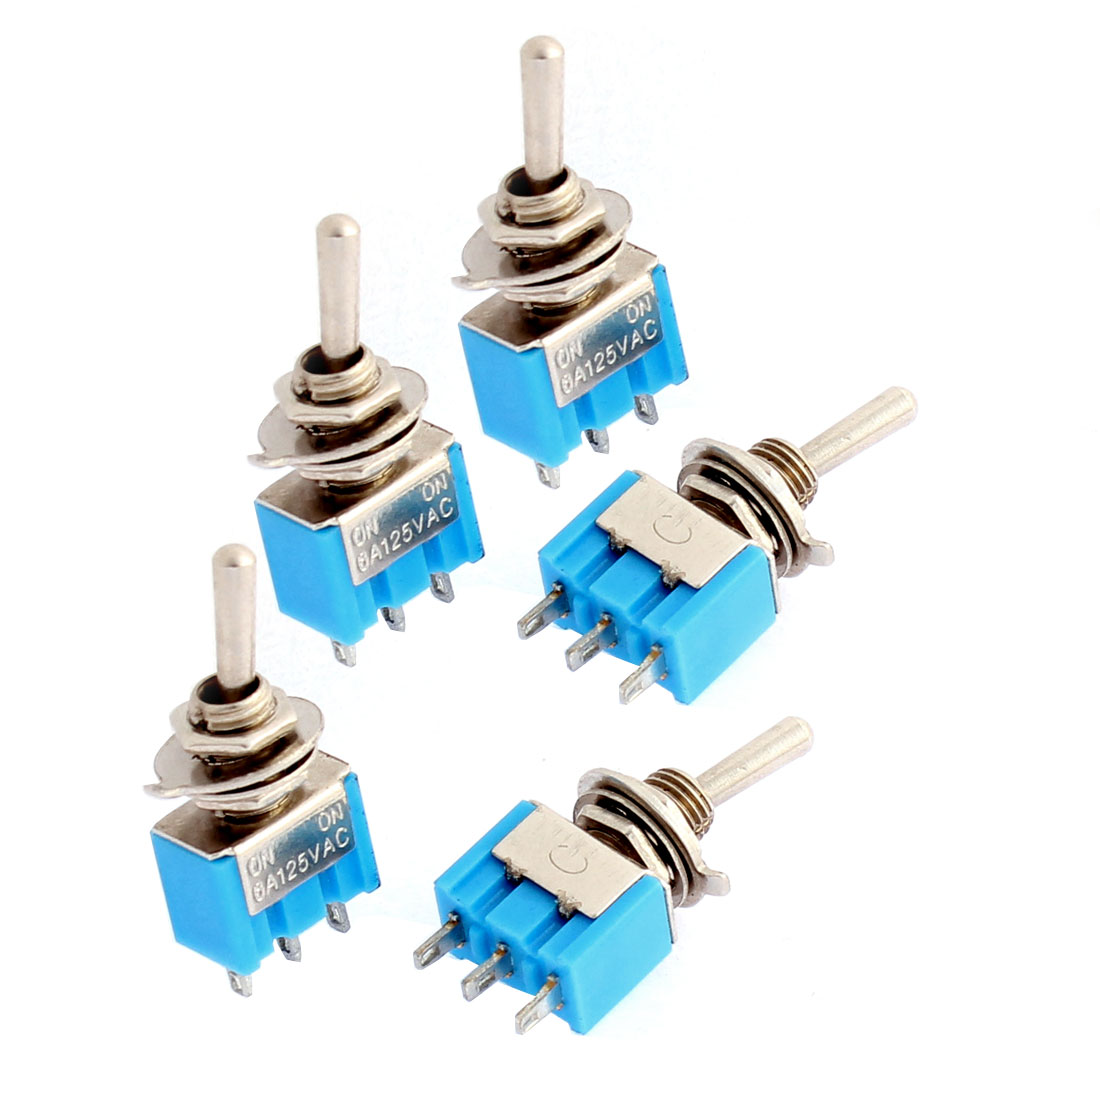 5Pcs AC 125V/6A 3 Terminals ON/ON 2 Way Motorcycle Latching Toggle Switch